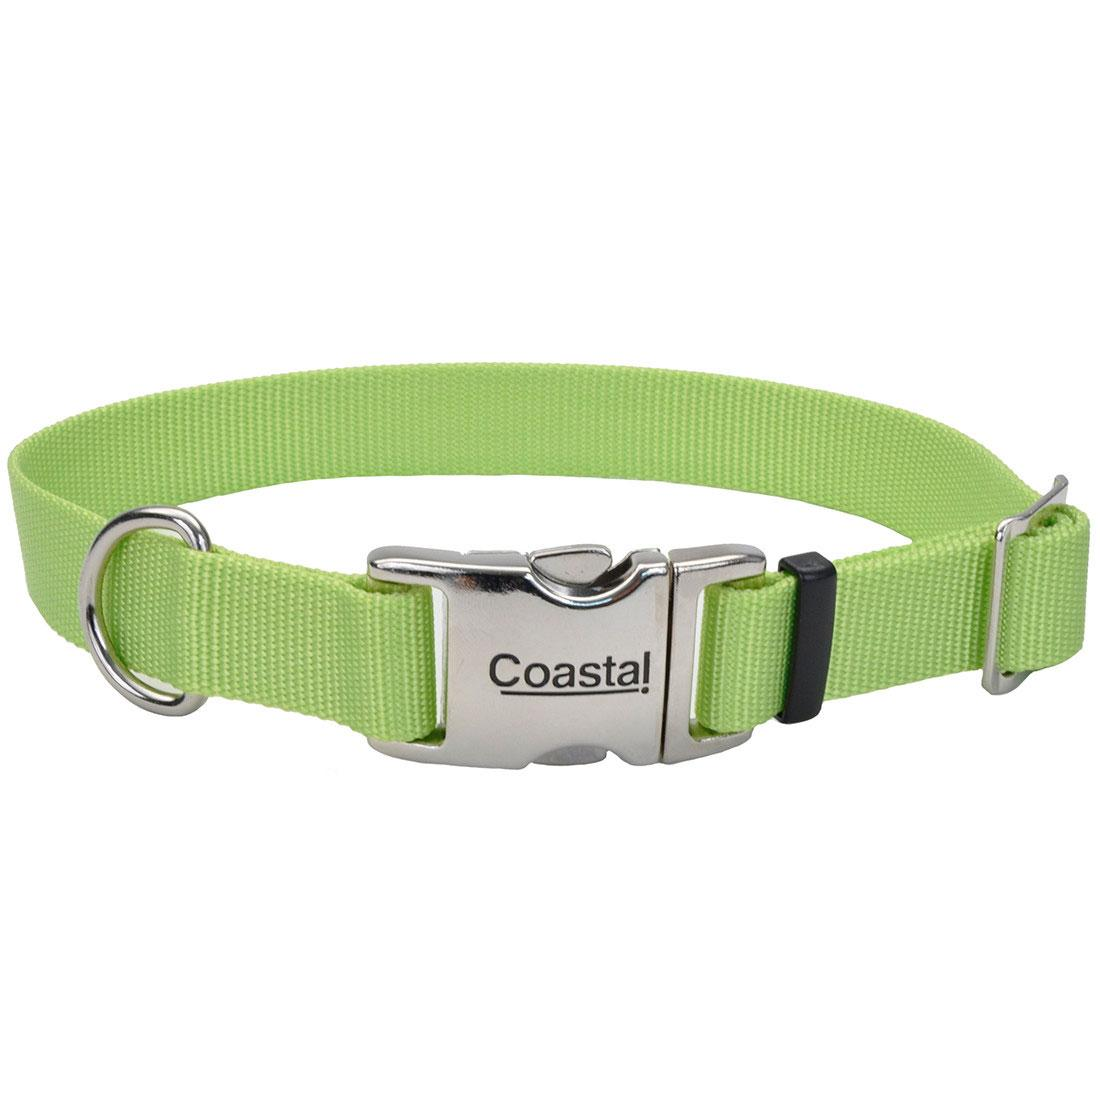 Coastal Adjustable Collar with Metal Buckle for Dogs, Lime, 5/8-in x 10-14-in